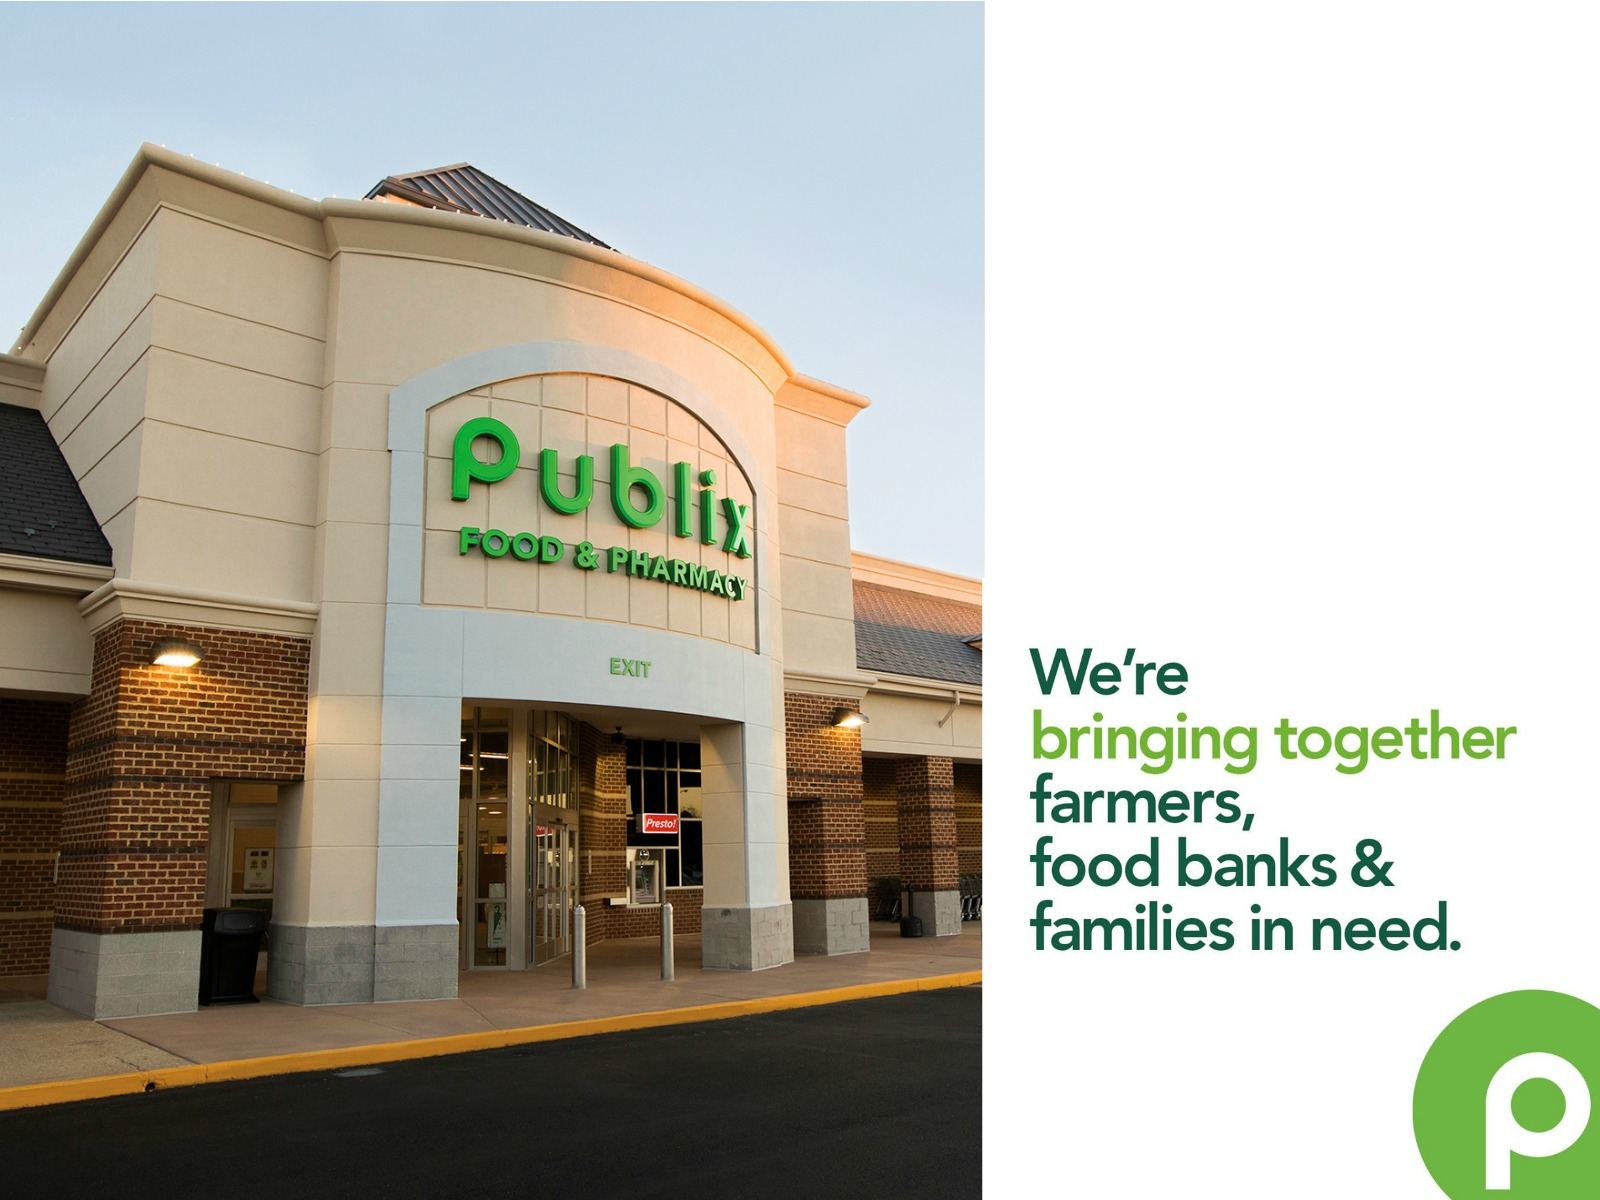 Publix Launches Initiative To Help Farmers And Feed Those In Need During The COVID-19 Pandemic on I Heart Publix